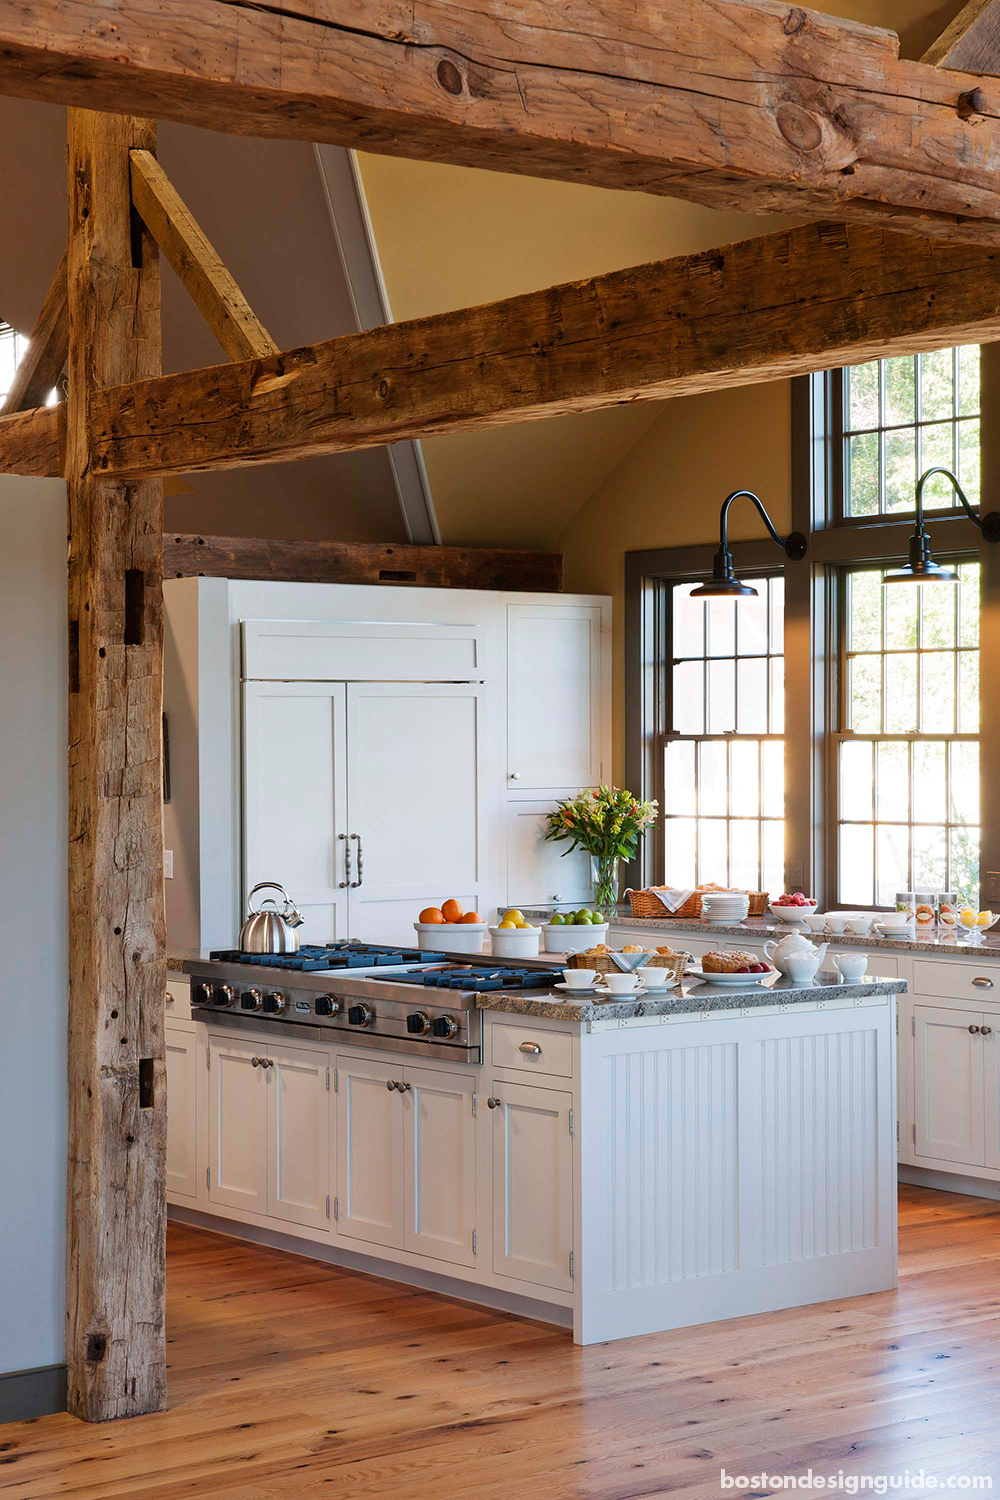 high-end home kitchen cabinetry design